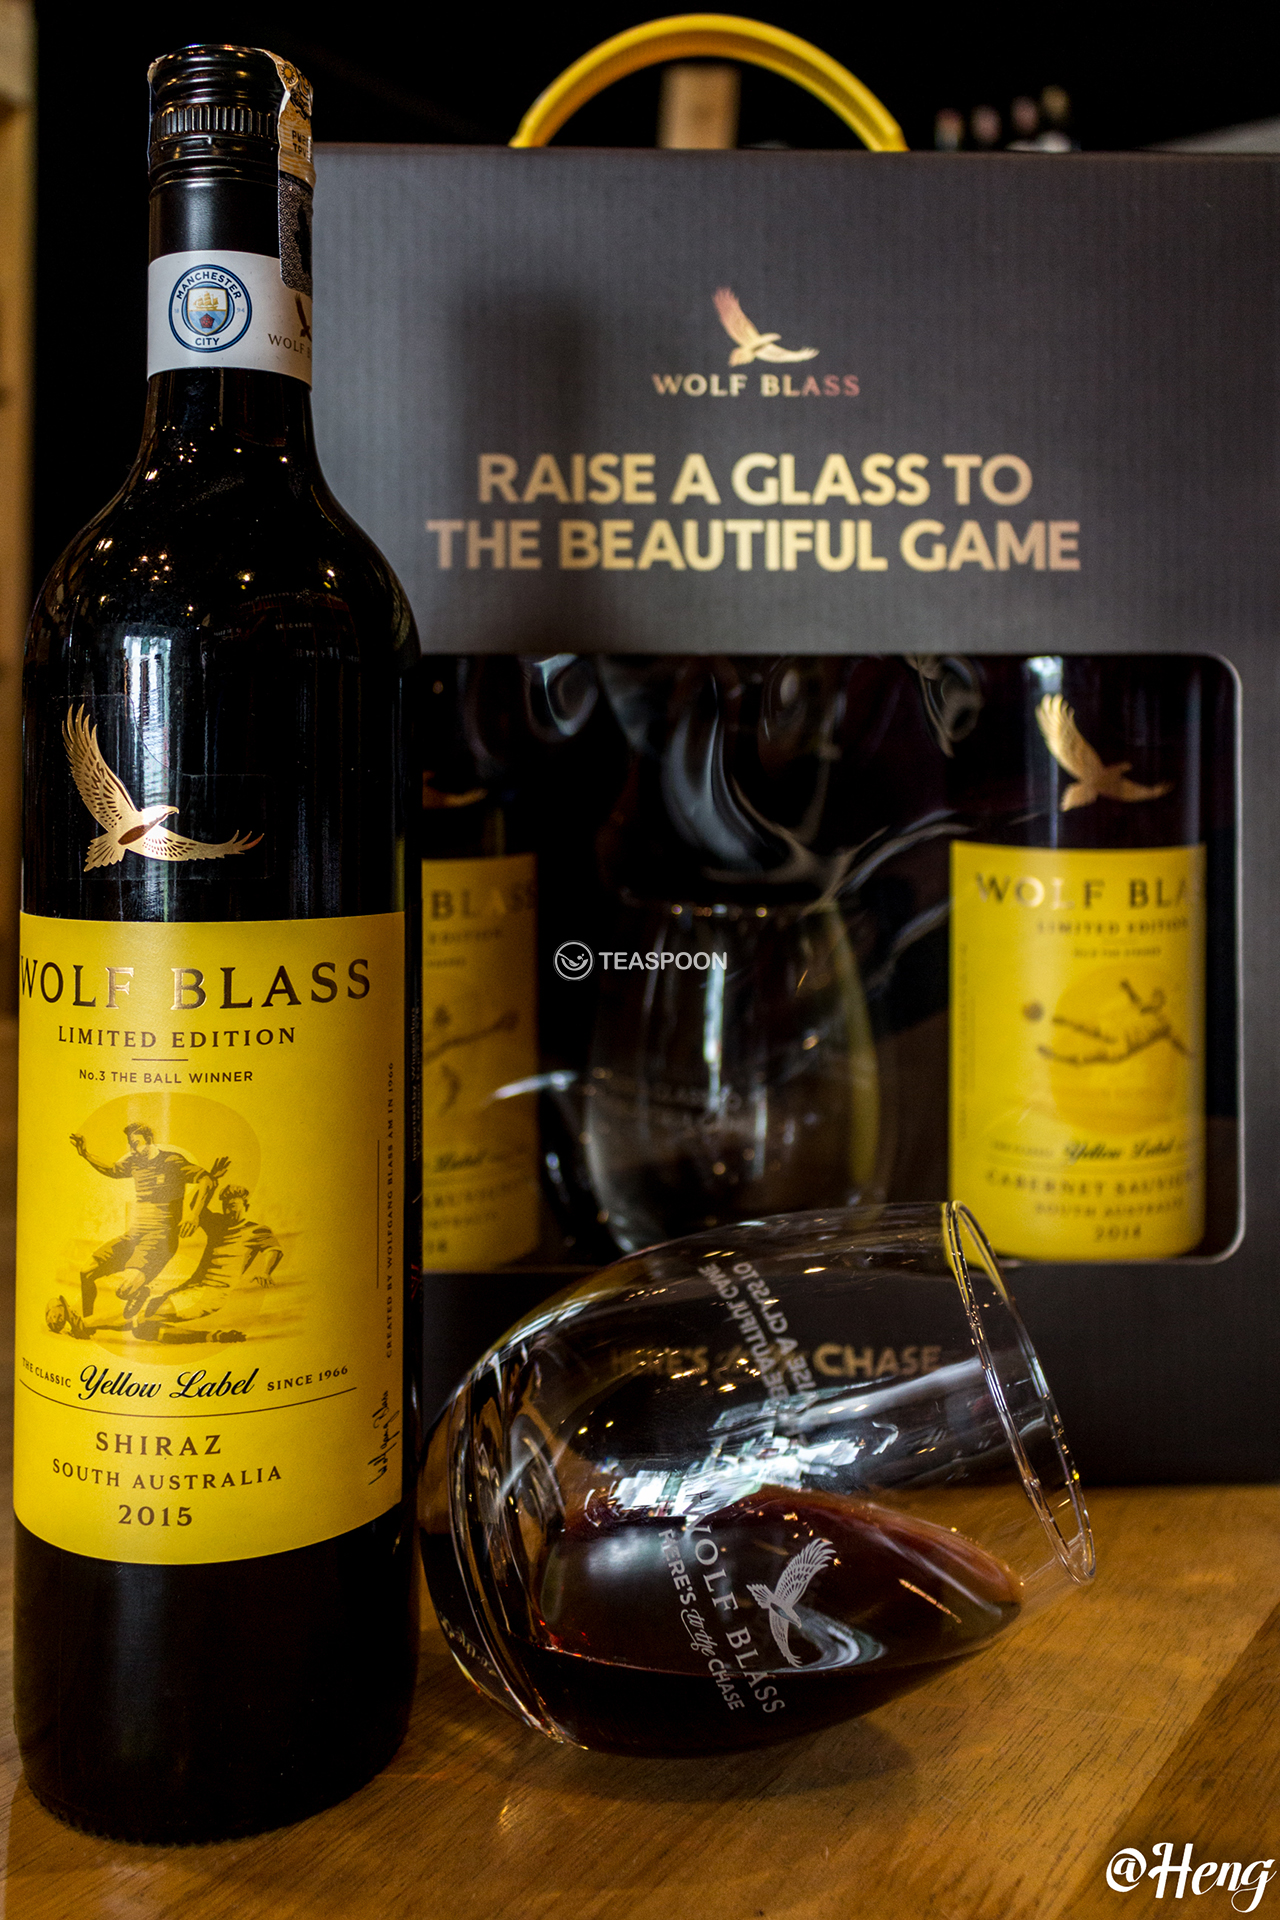 Wolf Blass  Limited  Edition Yellow  Label  Football  Series Cabernet Sauvignon and Shiraz